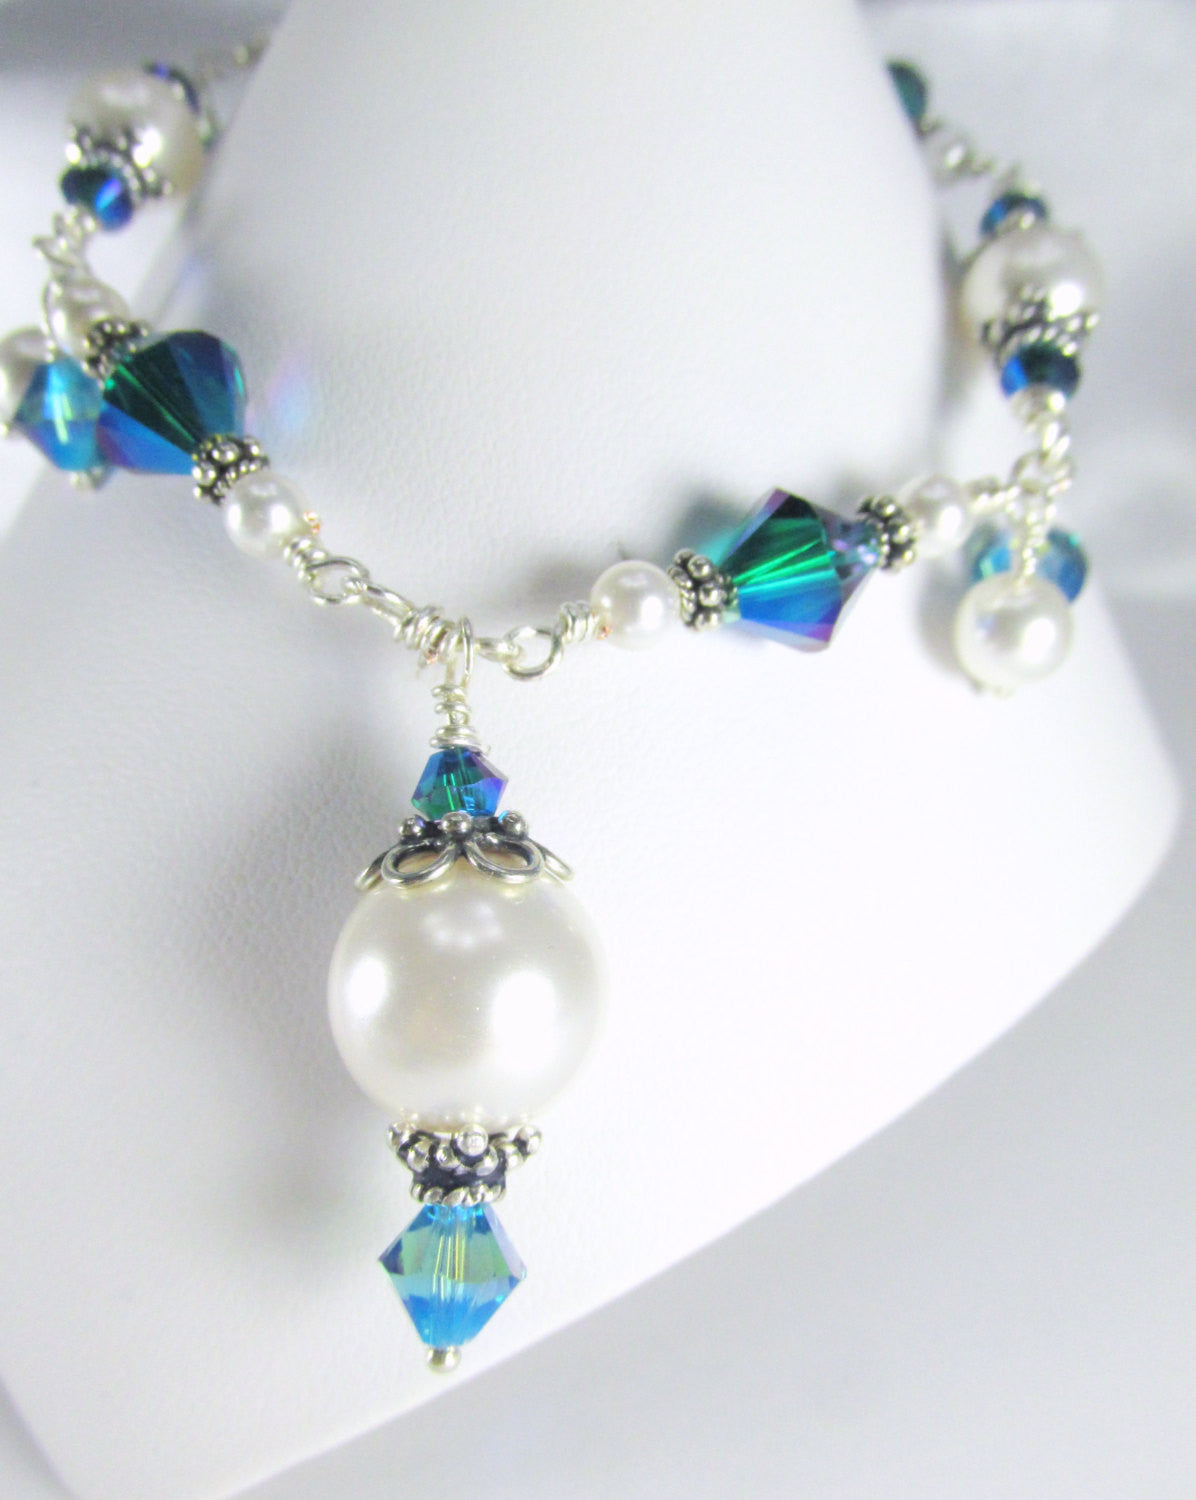 Bermuda Blue Swarovski Crystal Charm Bracelet with White Pearls on Sterling Silver - Odyssey Creations